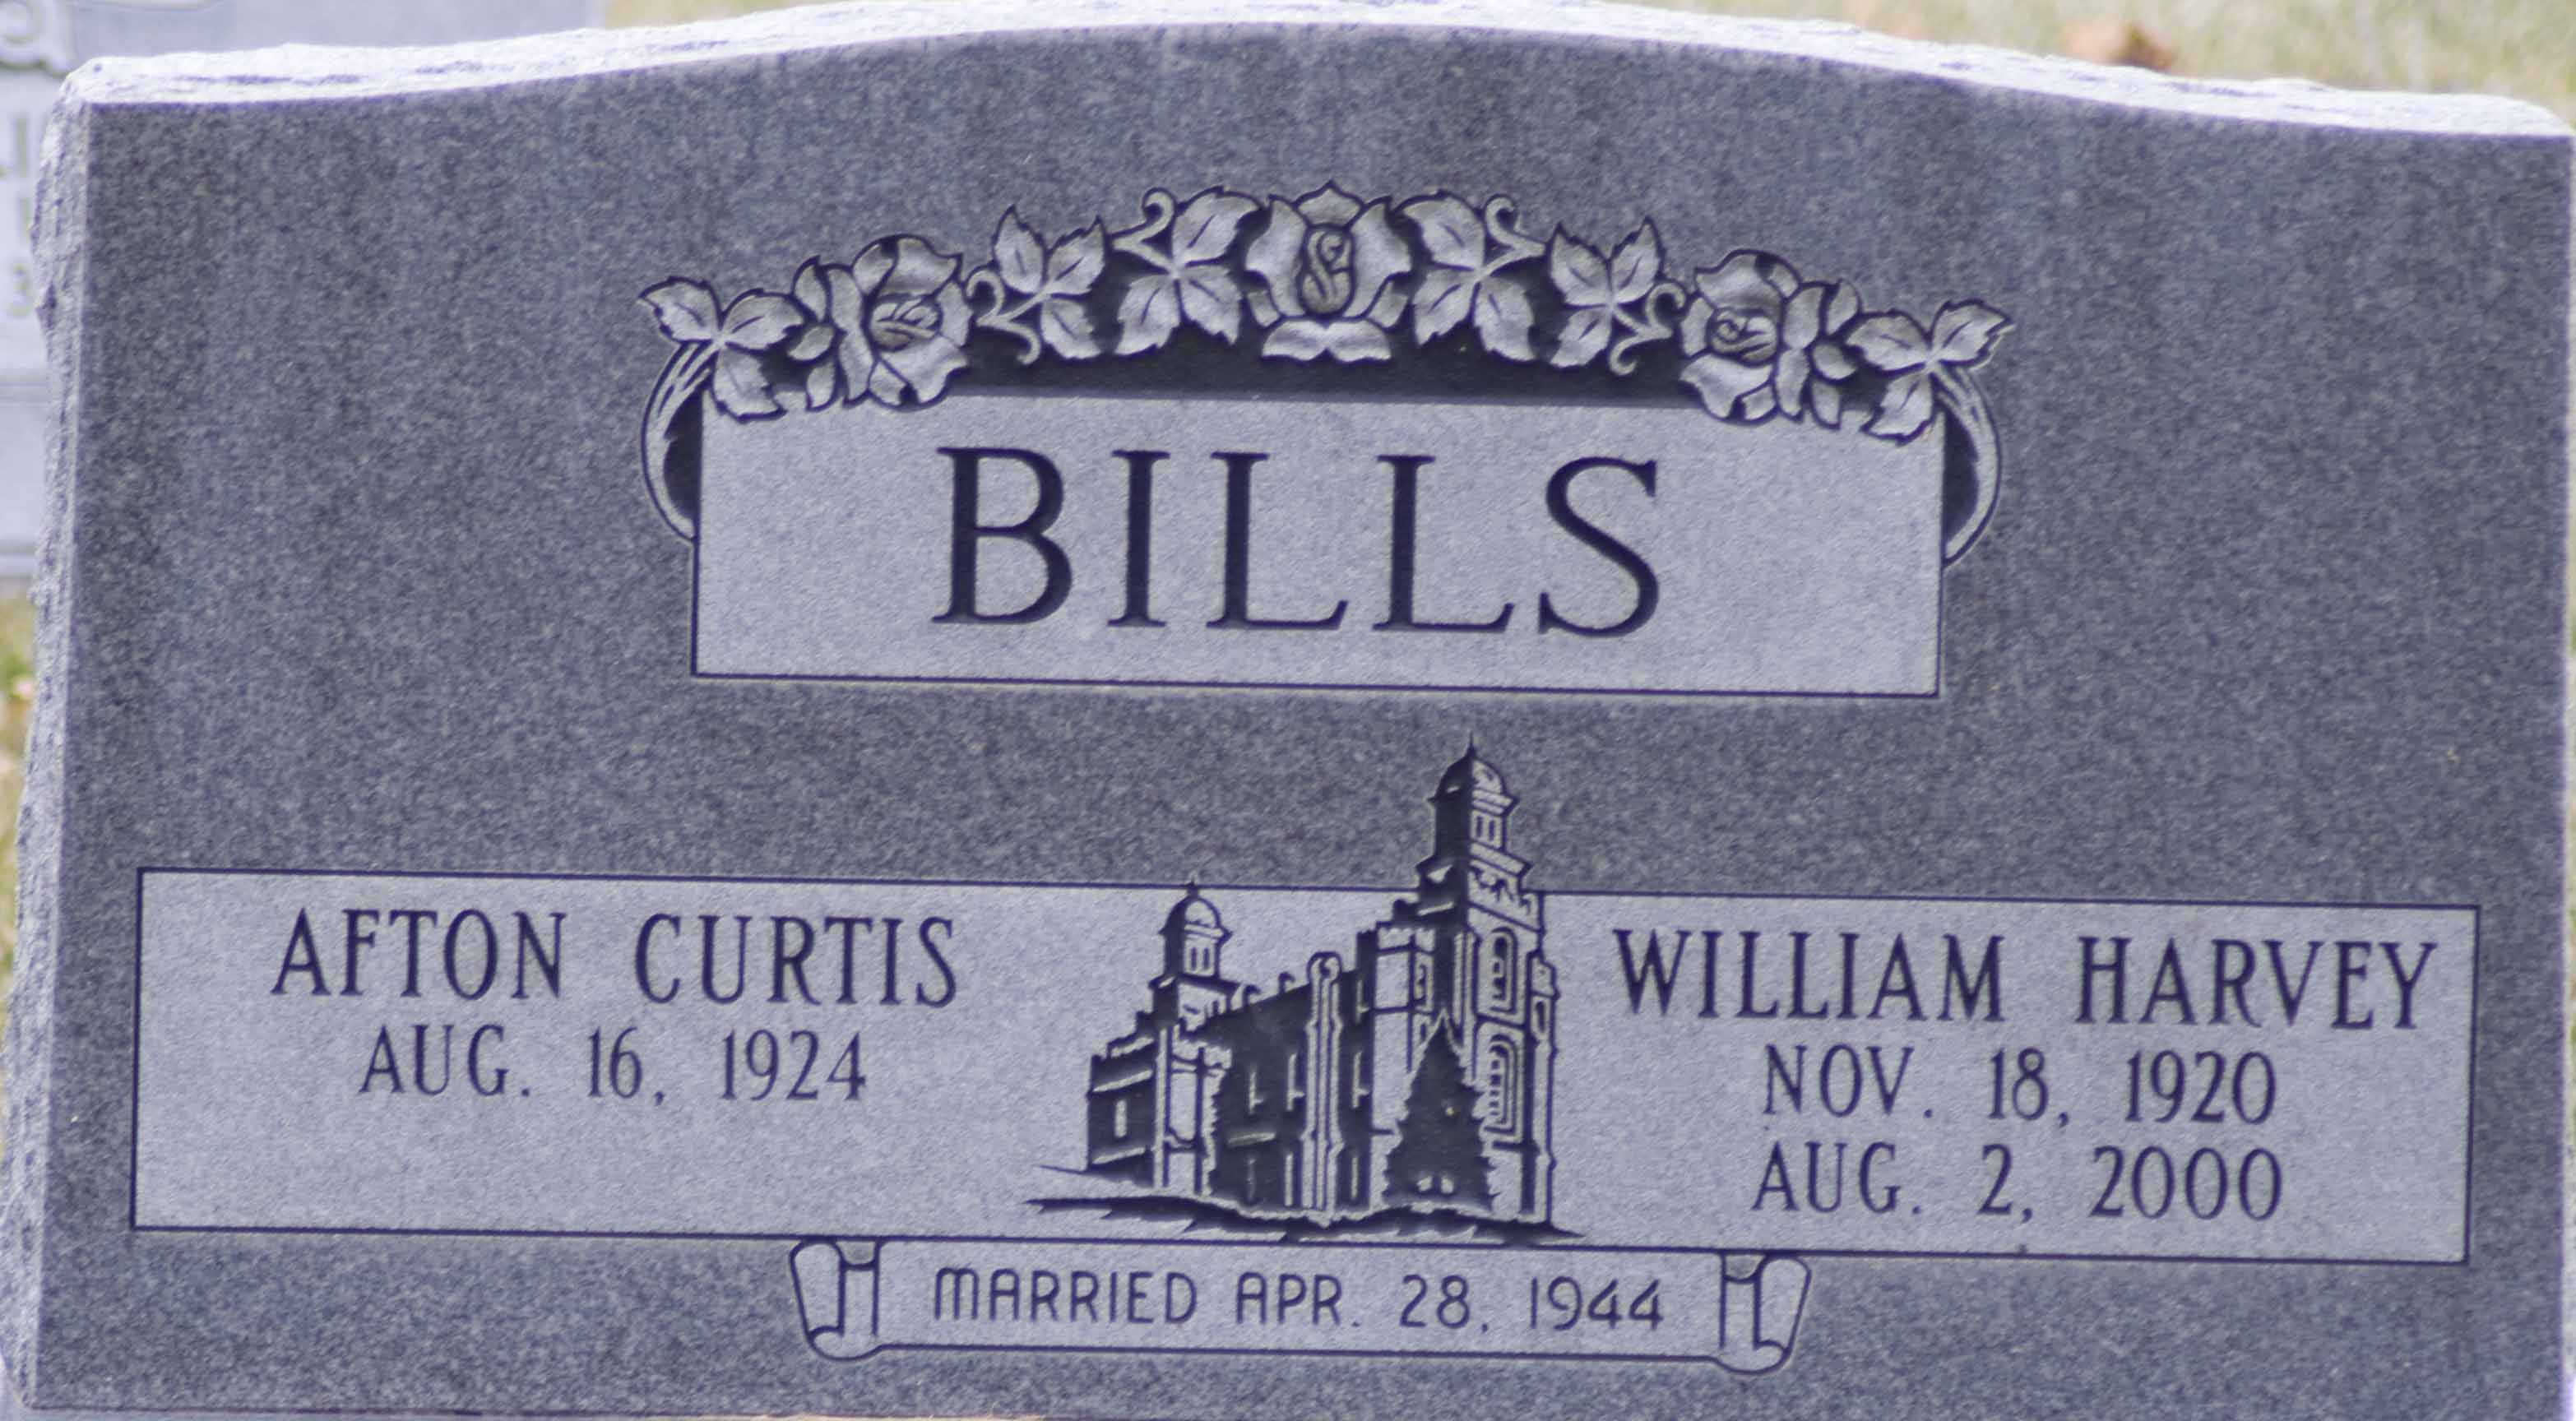 Afton <i>Curtis</i> Bills